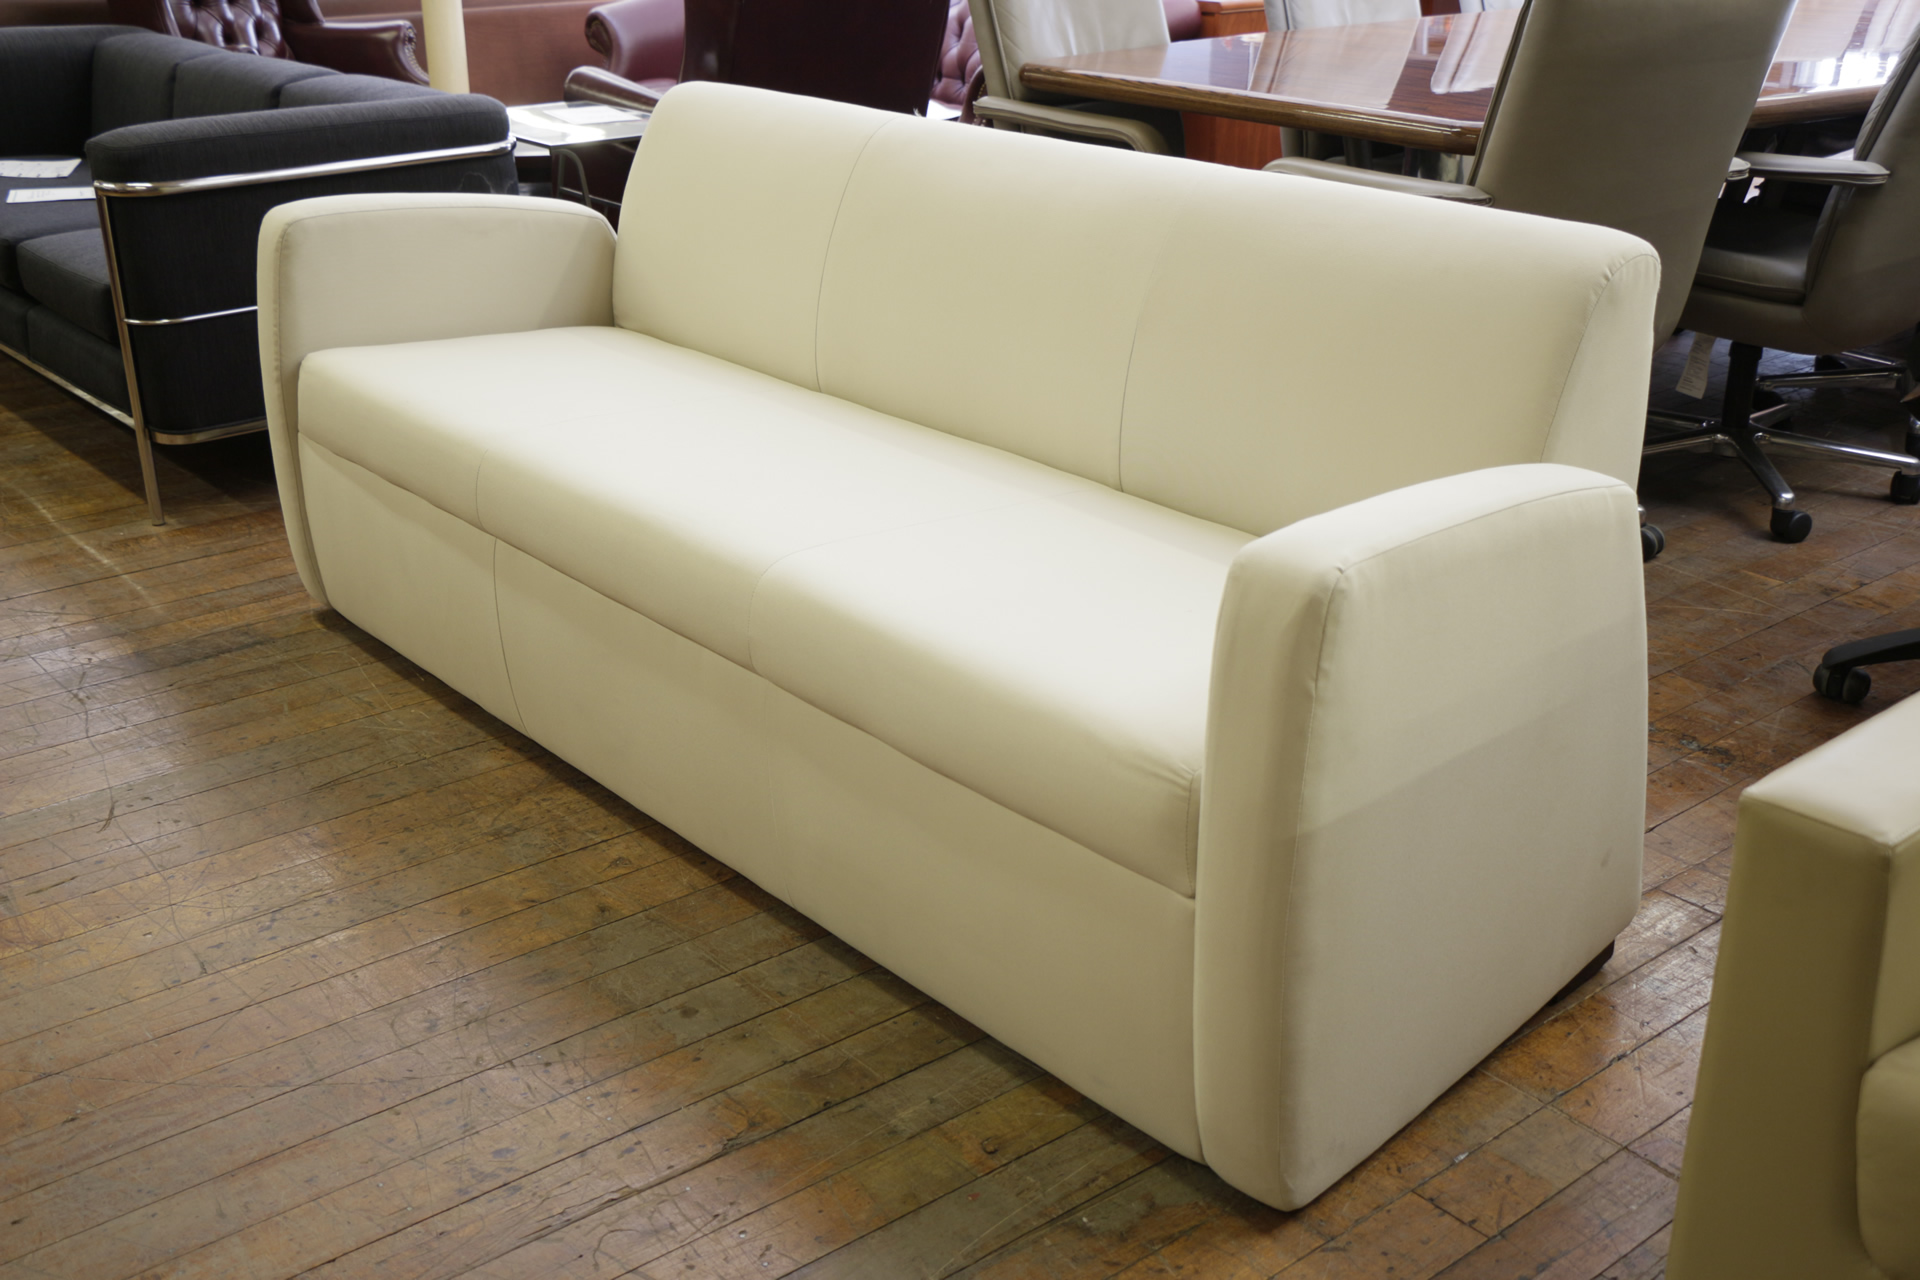 Paoli White Fabric Sofa – CAL133 Compliant